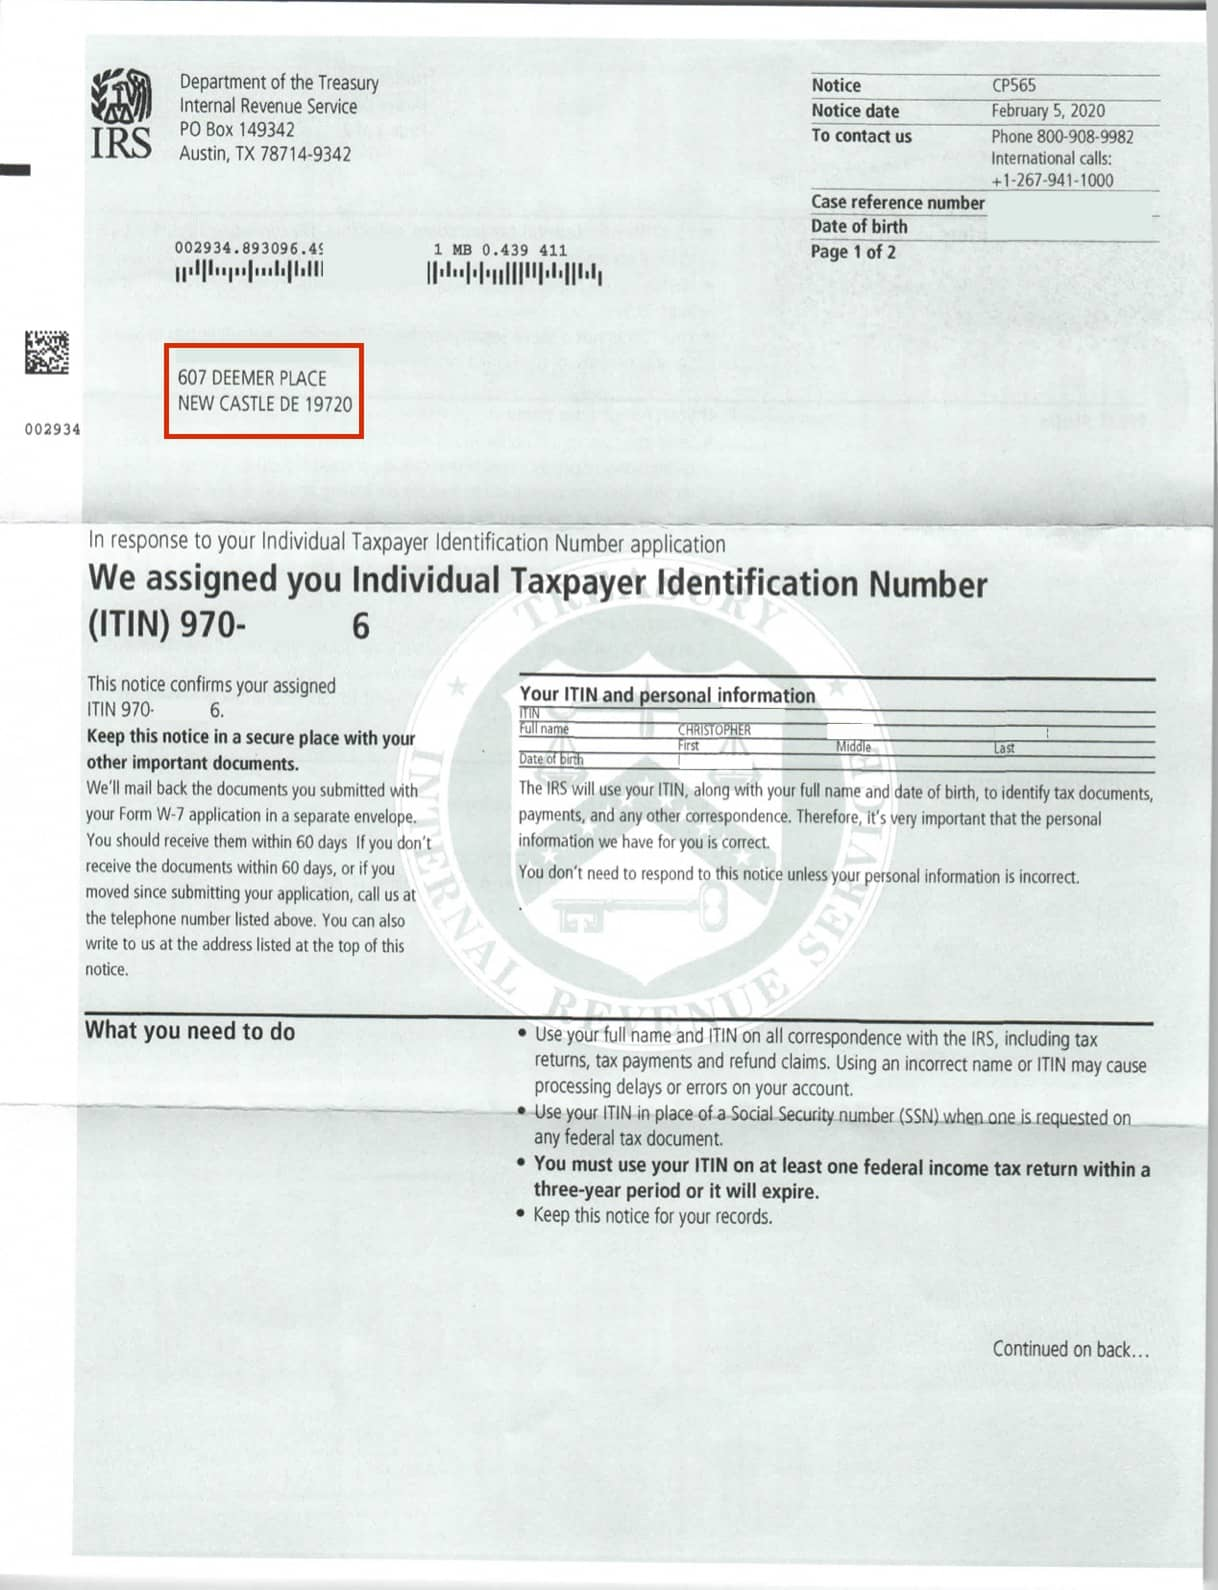 ITIN-Individual-Identification-Number-Physical-Result-Letter-issued-by-the-IRS-first-page